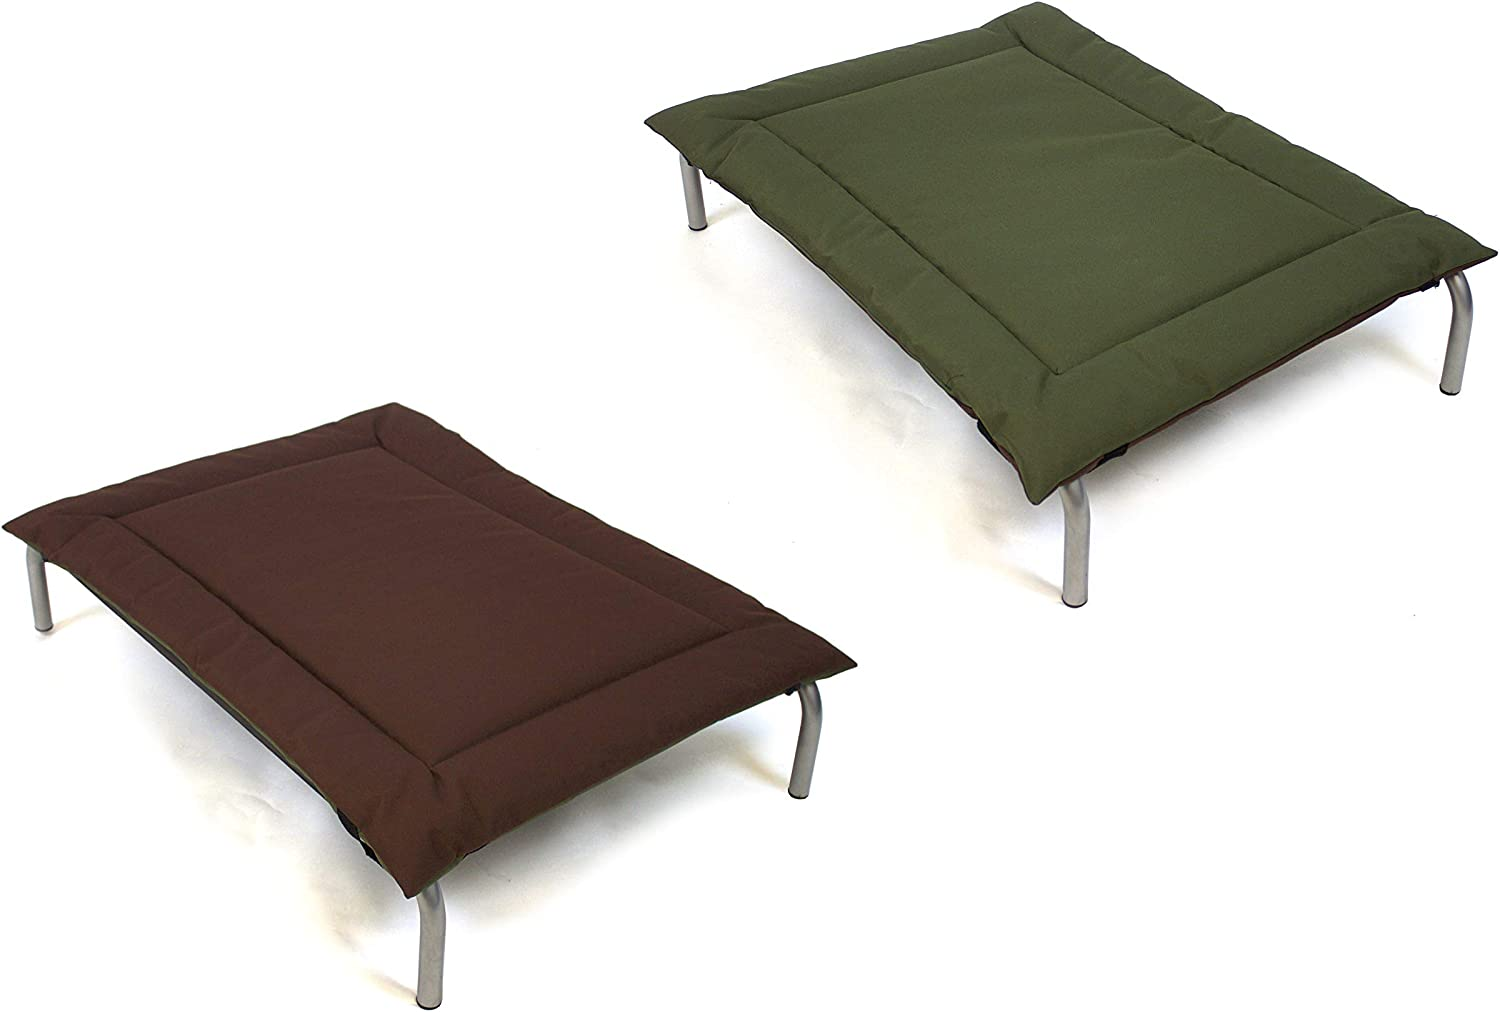 HiK9 The Original Water Resistant Pad (Extra Large, Chocolate & Olive)